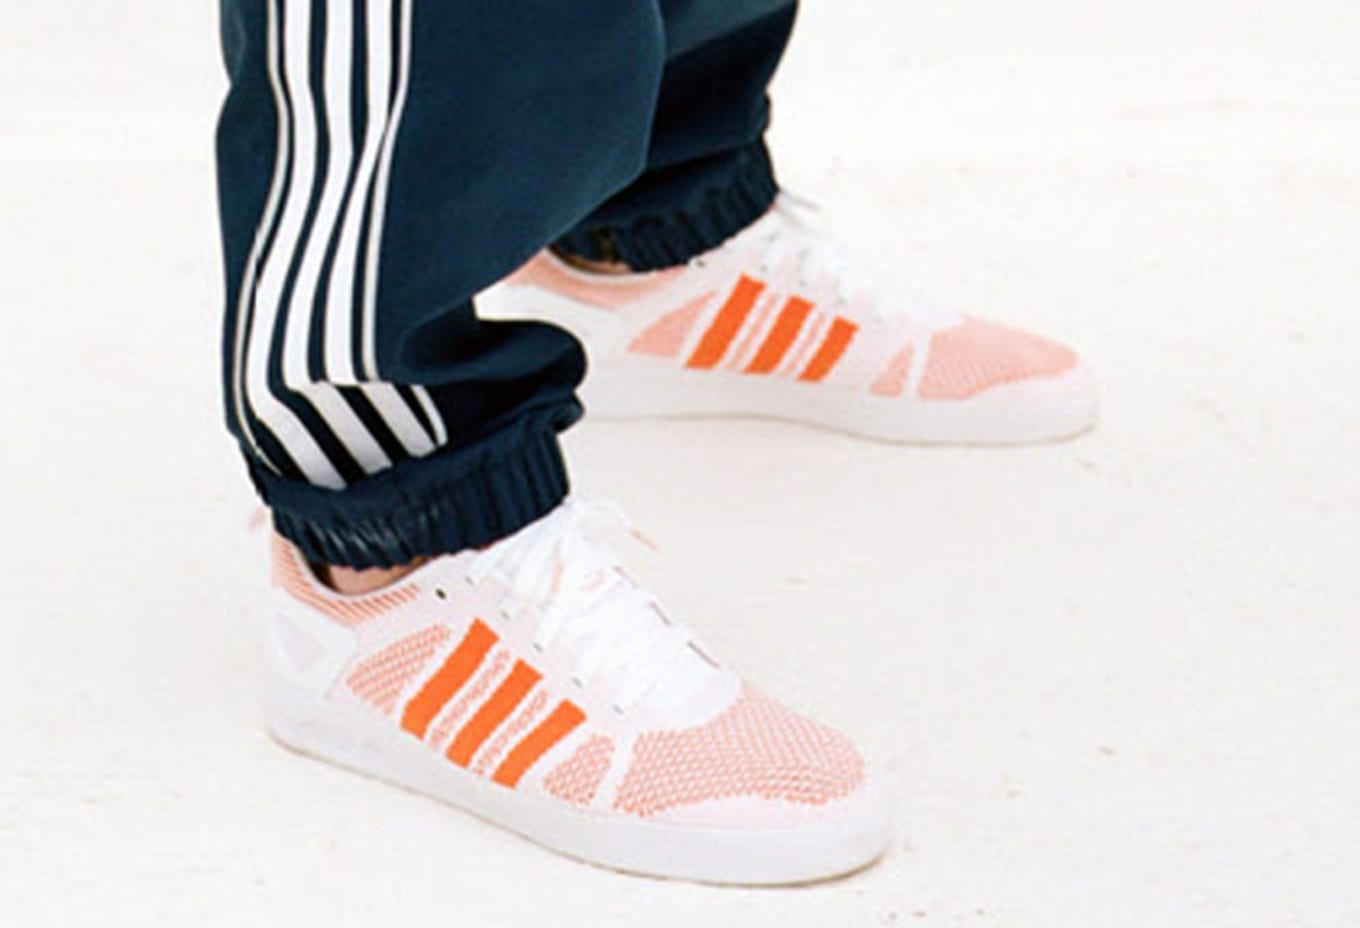 Palace Adidas Sneakers Summer 2016 Eneste samler  Sole Collector